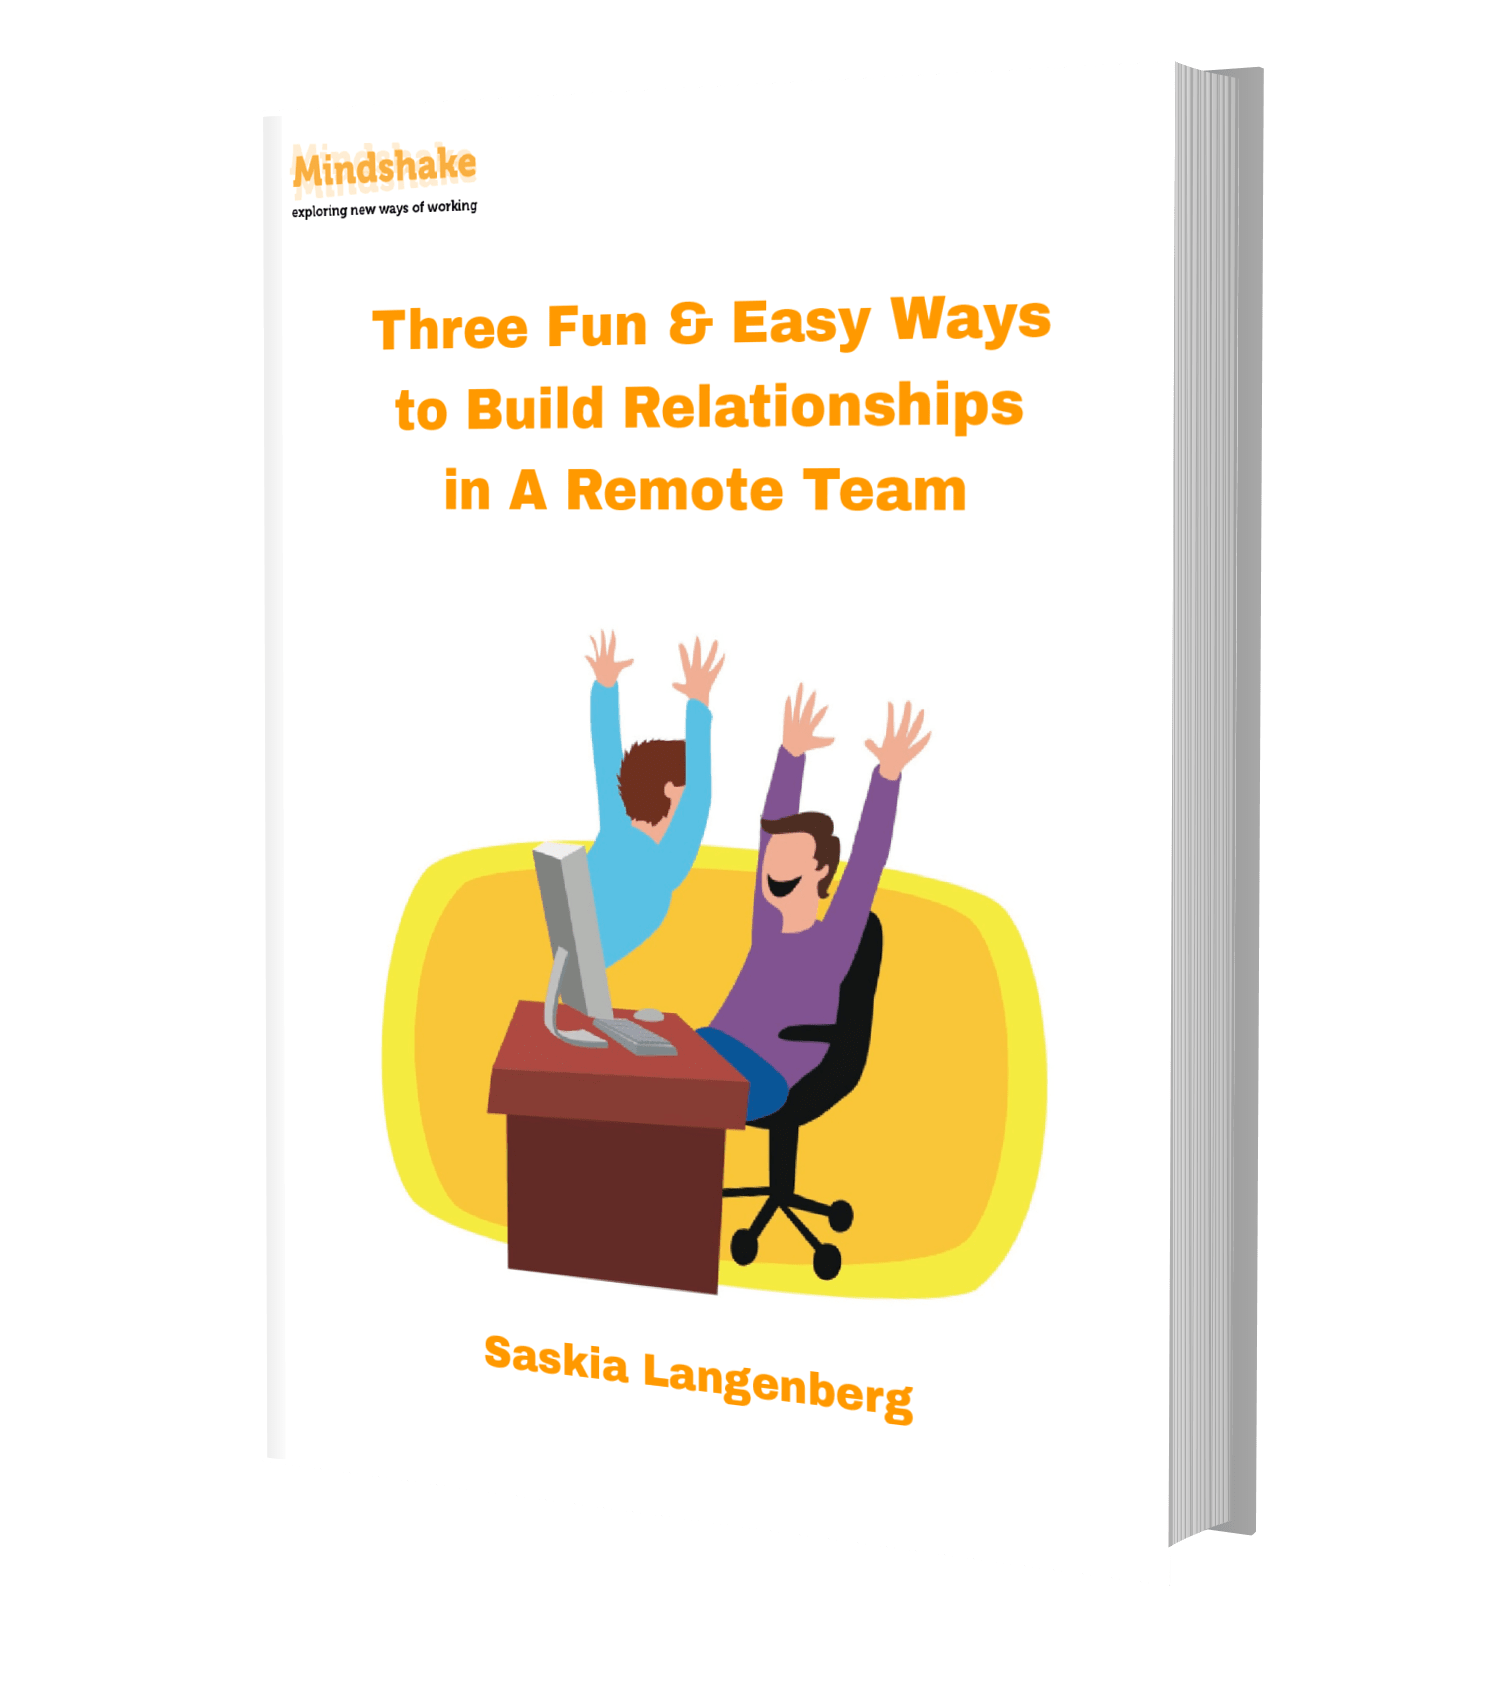 Free Guide - Build Relationships Remote Team